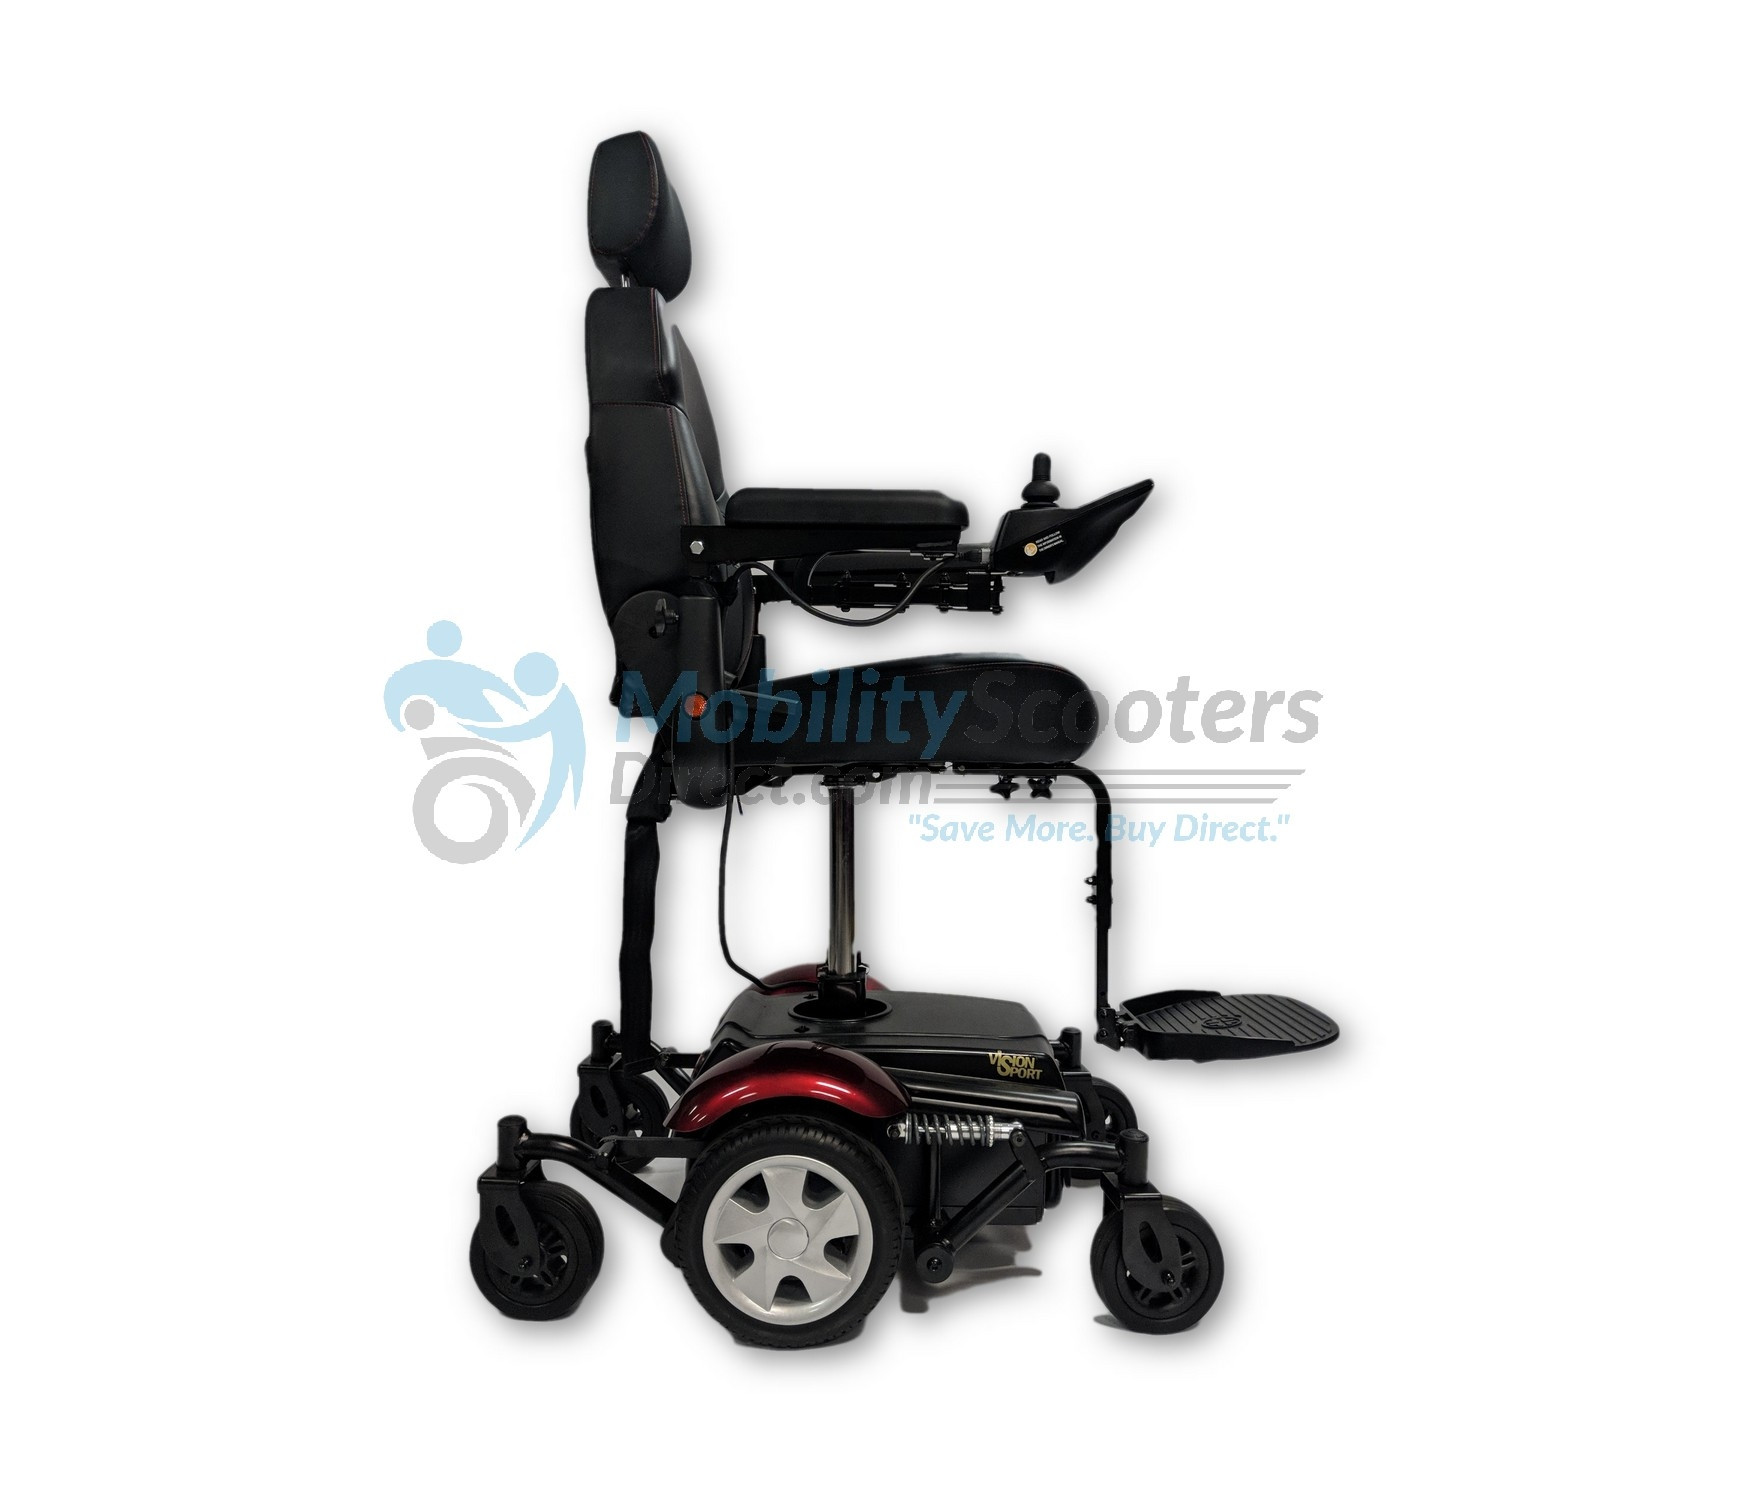 merits power chair folding legs vision sport wheelchair for sale lowest prices